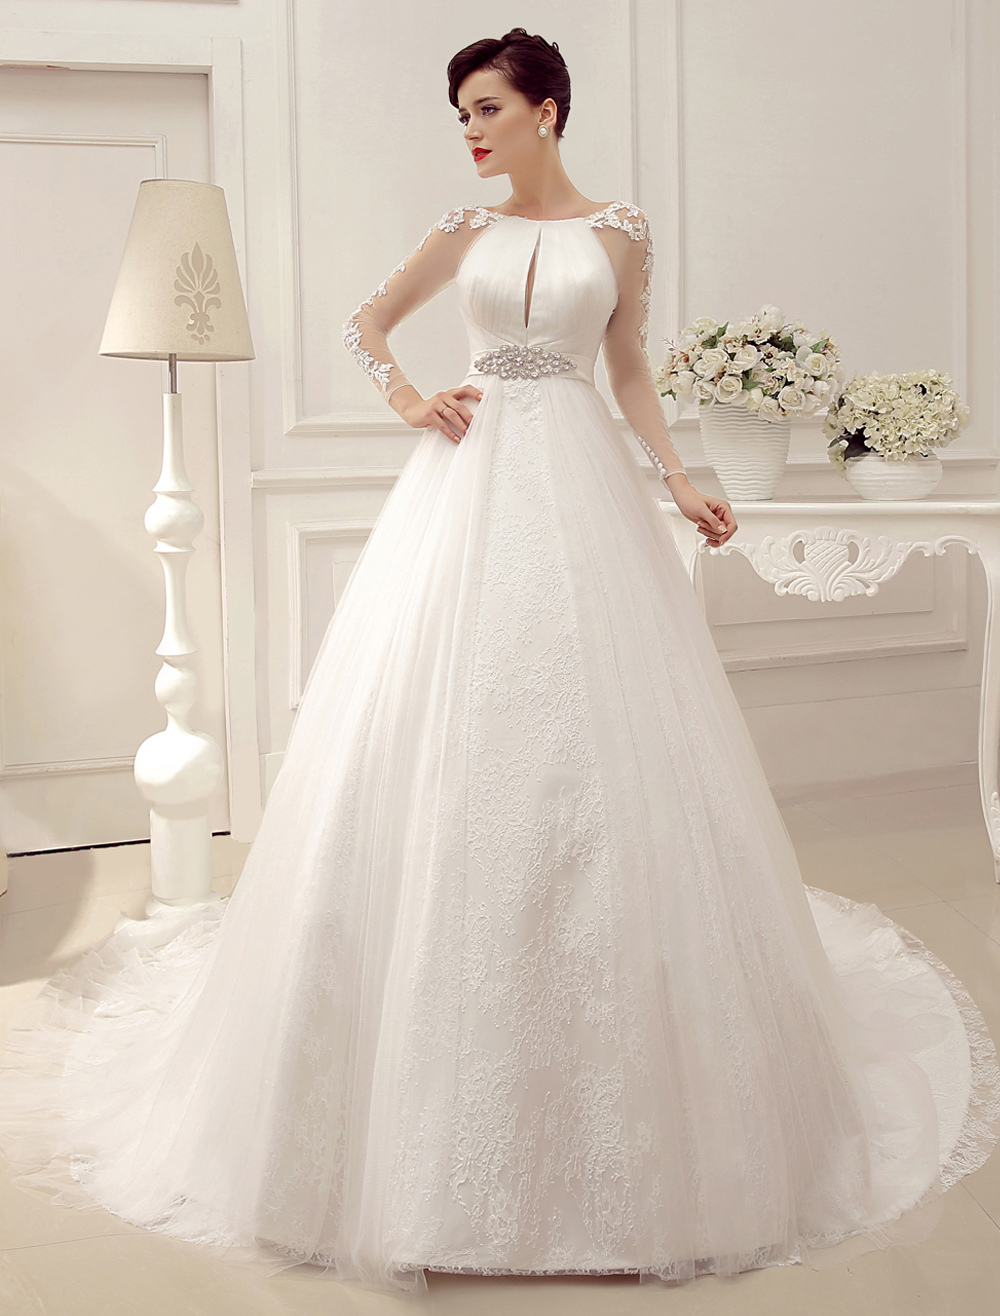 Wedding Dresses Ball Gown Bridal Dress Long Sleeve Lace Applique Beaded Rhinestones Sash Illusion Cutout Wedding Gown With Train Milanoo